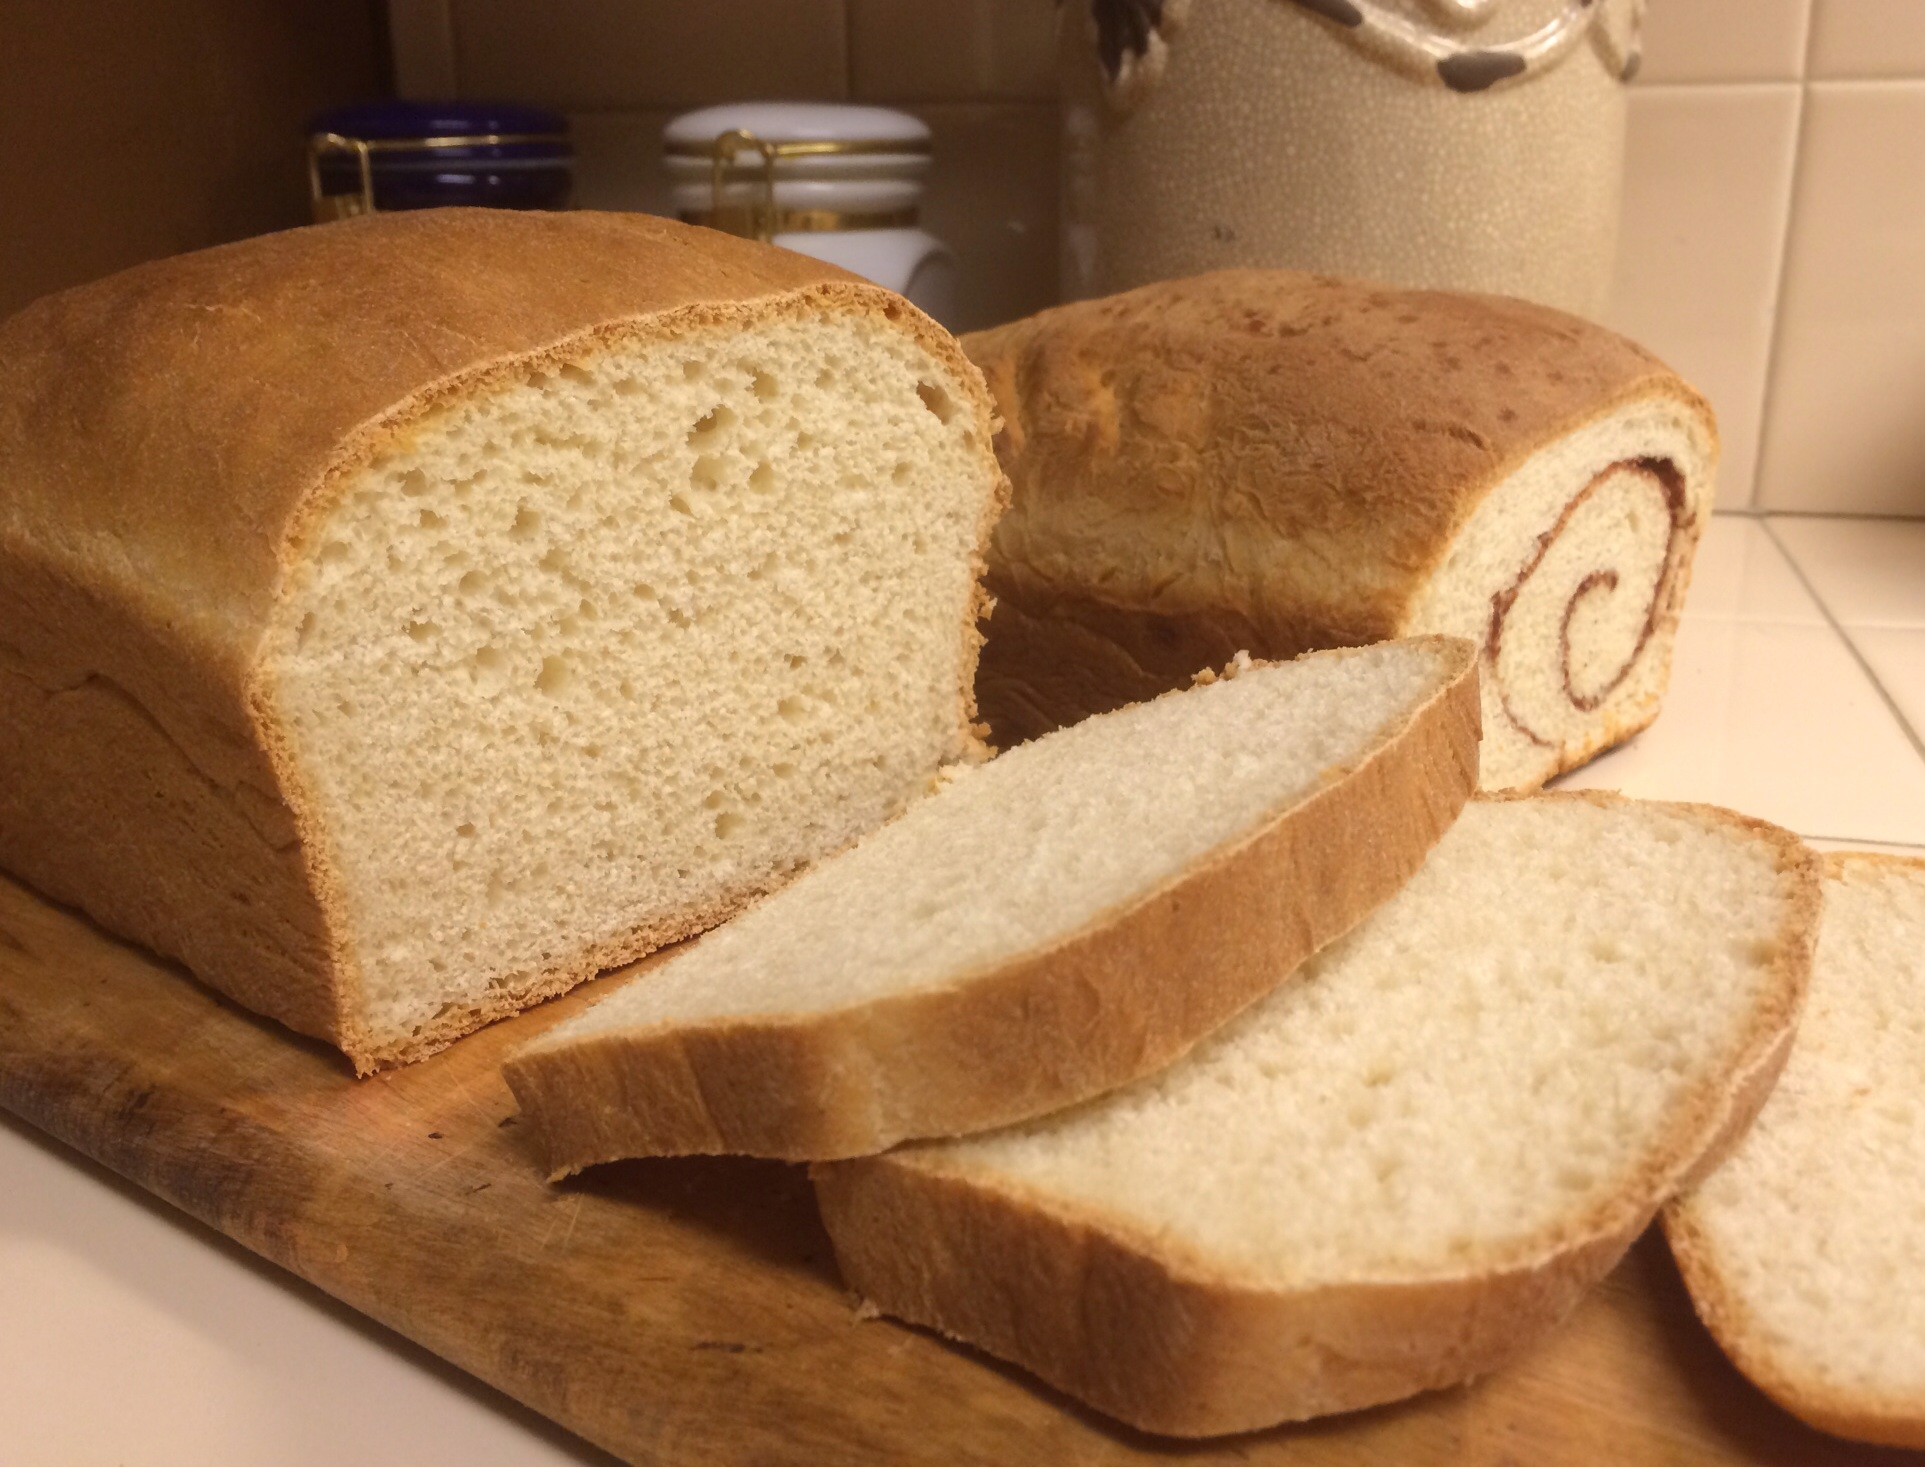 Fresh Baked Bread - Have You Eaten, SF?